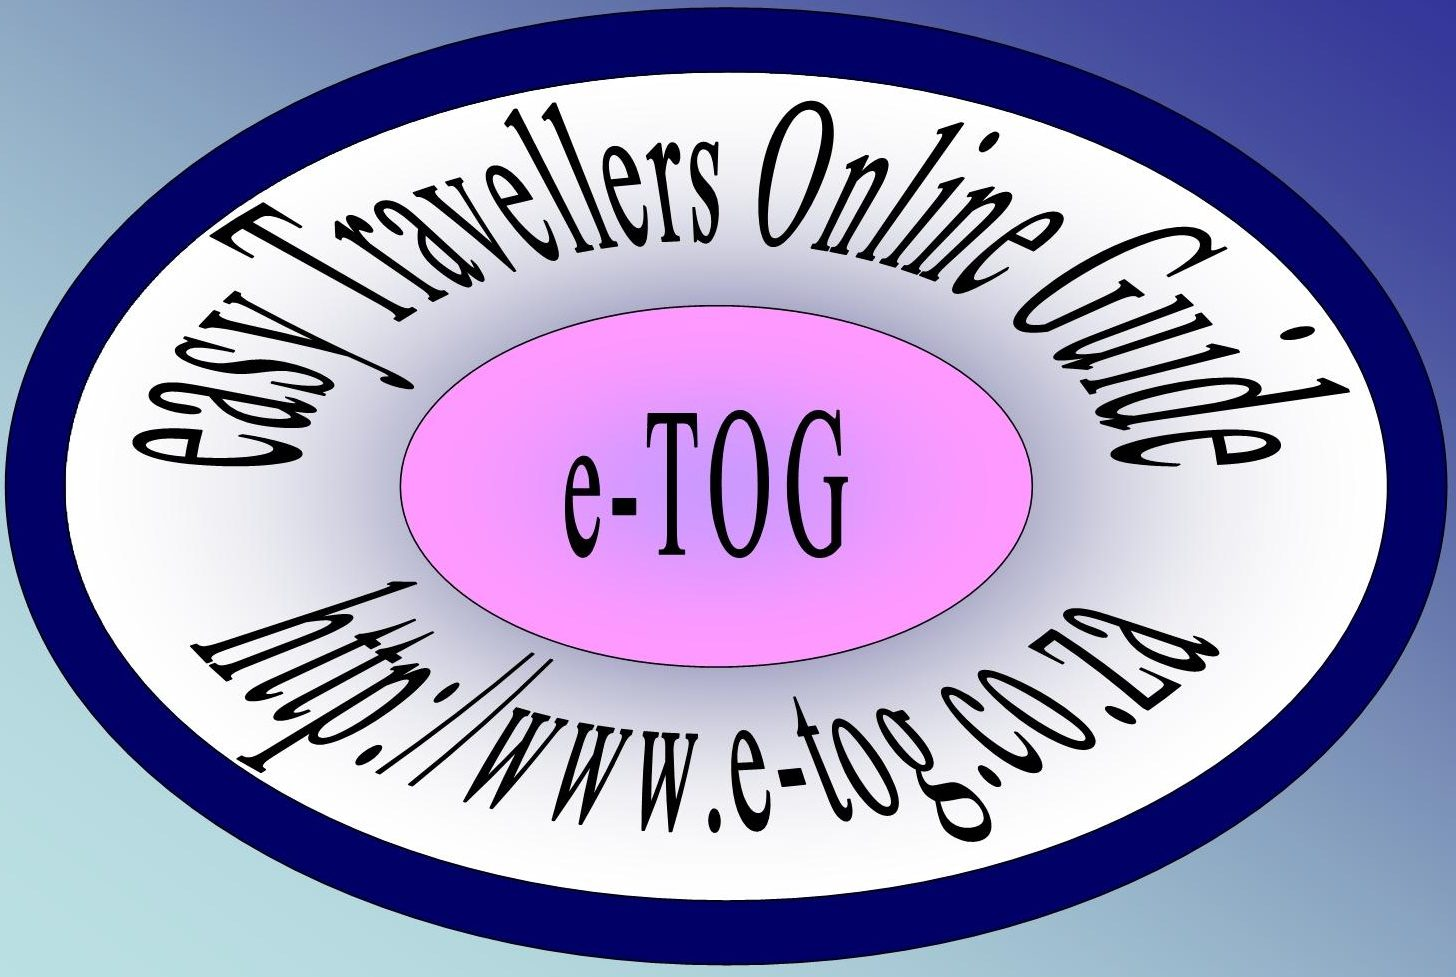 easy Travellers online Guide